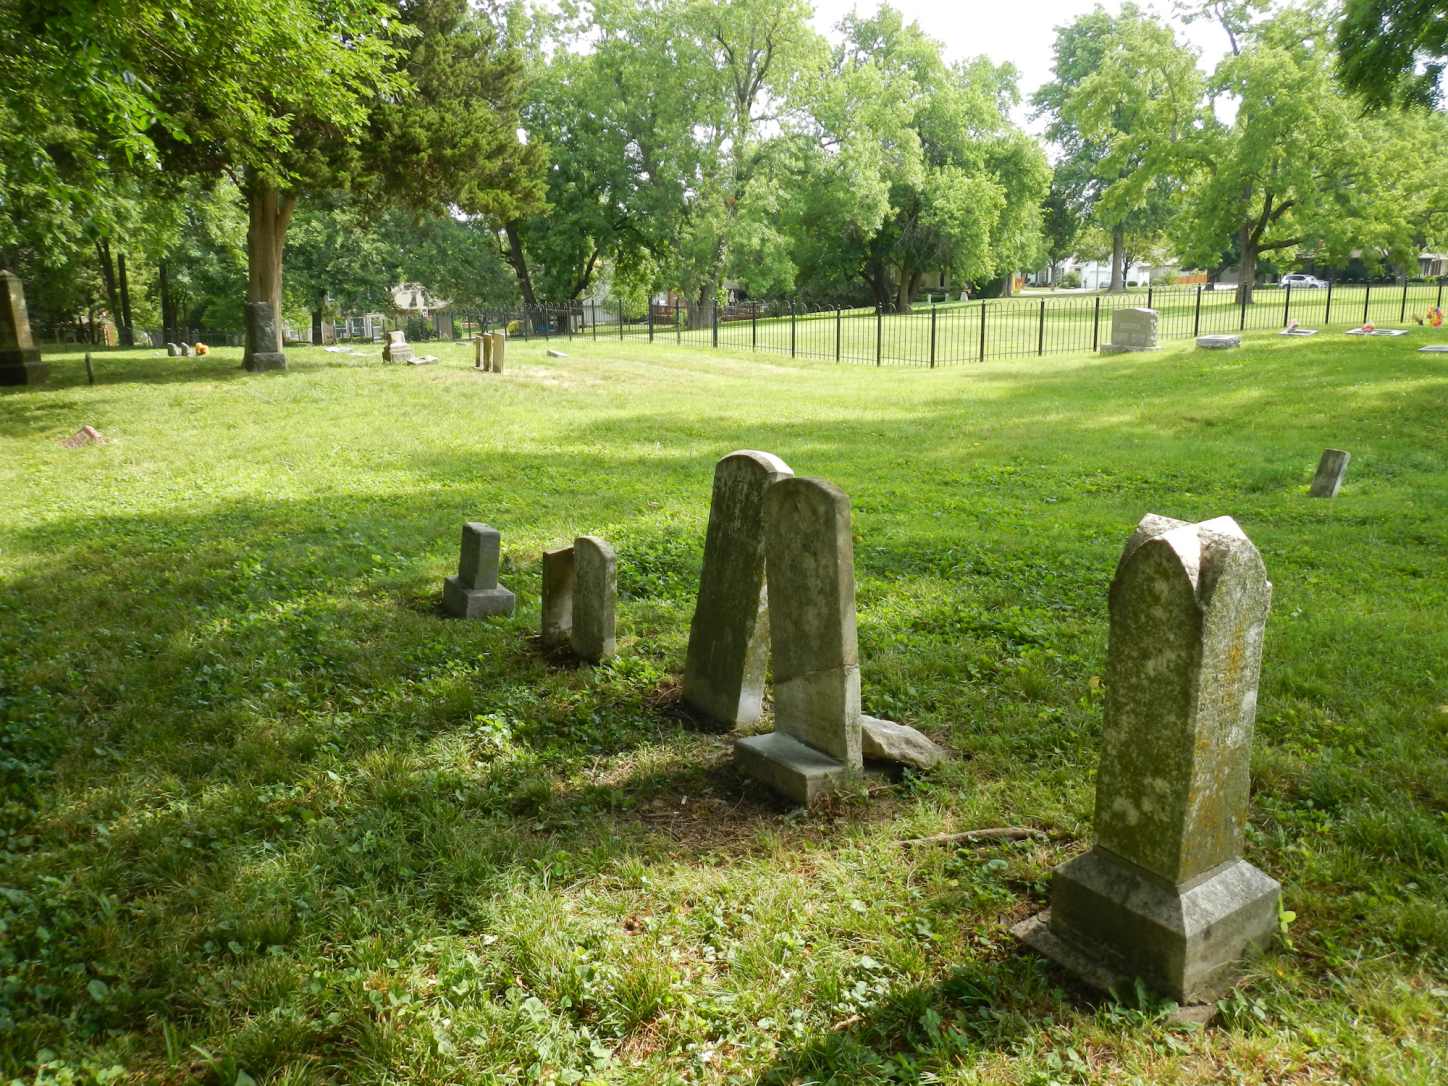 Undulations in the cemetery are the remnants of old wagon ruts